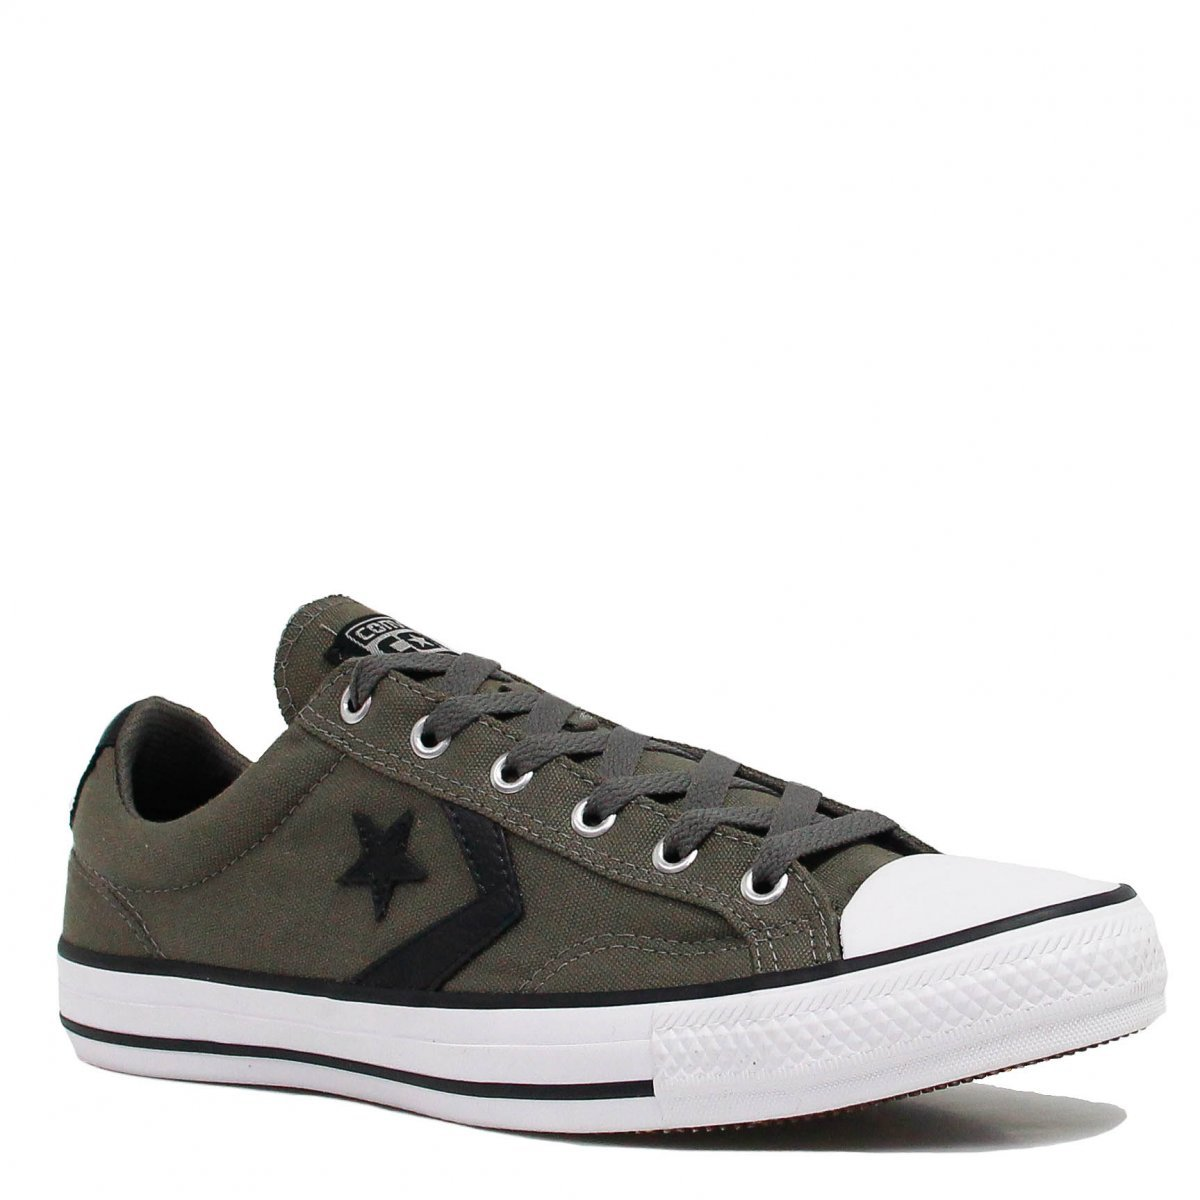 9ba6f3103be Tênis Converse Casual Star Player CO0136 - Eclipse - Betisa - Sua ...